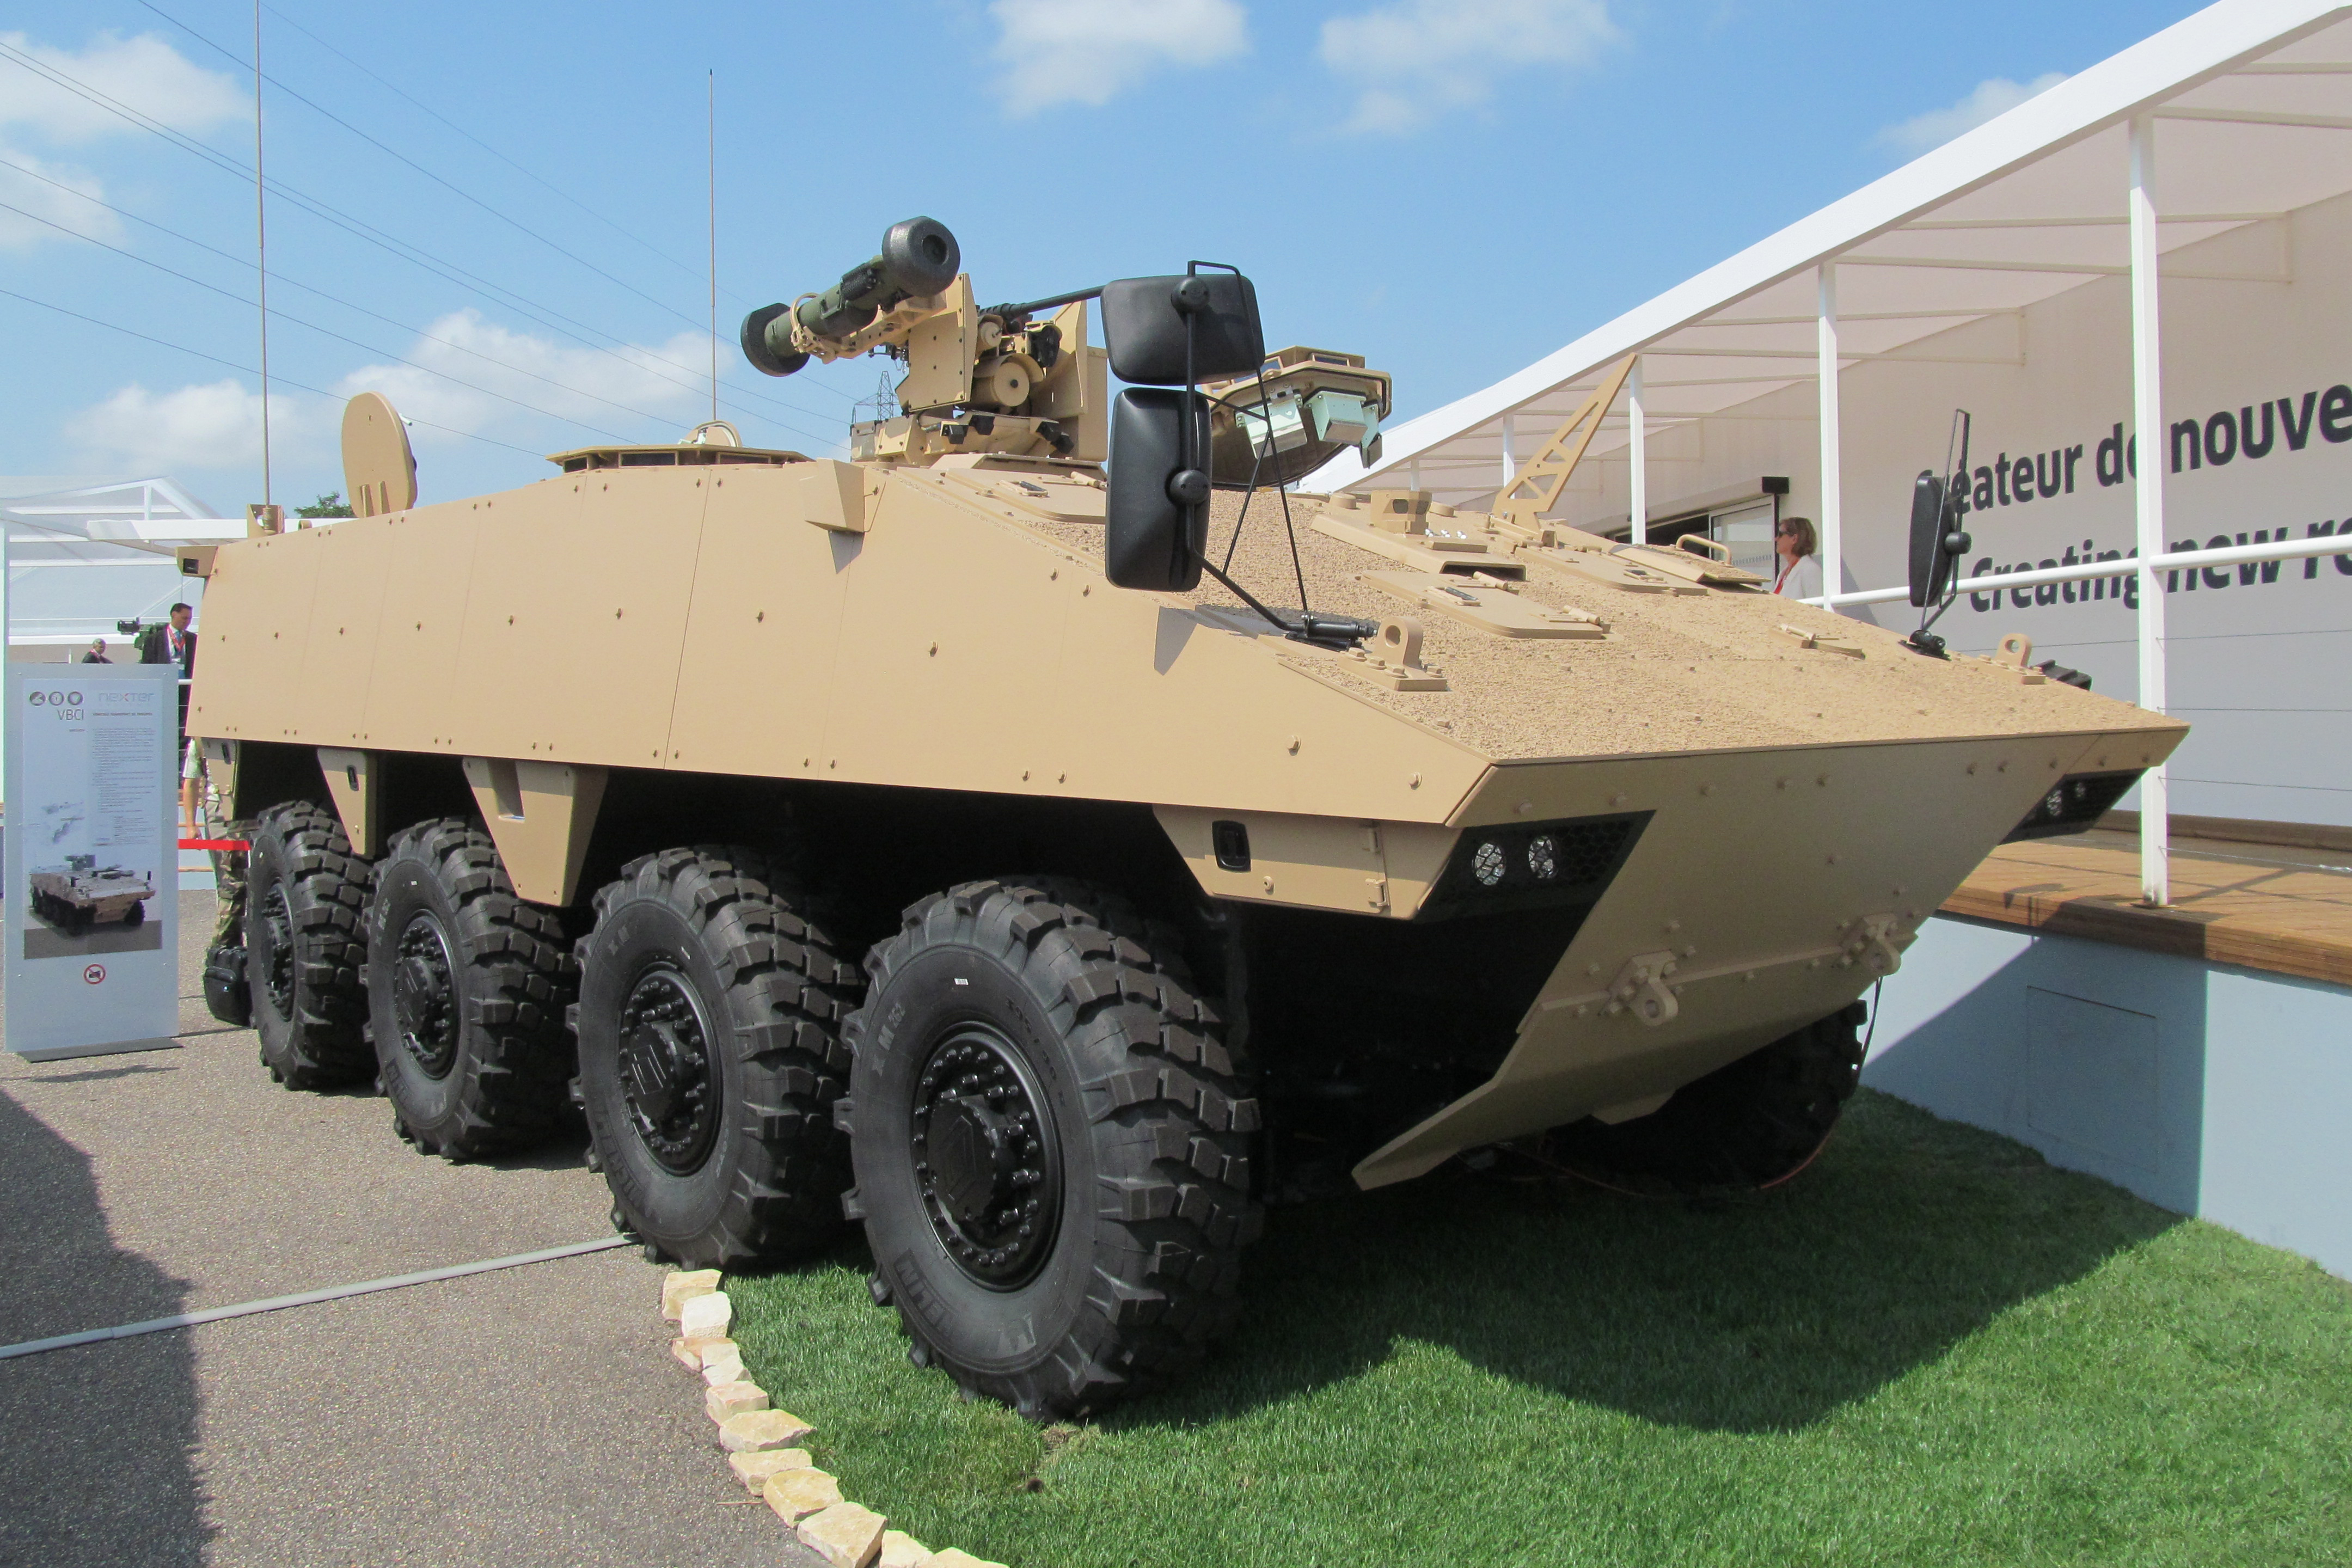 Eurosatory: Nexter modifies VBCI troop carrier